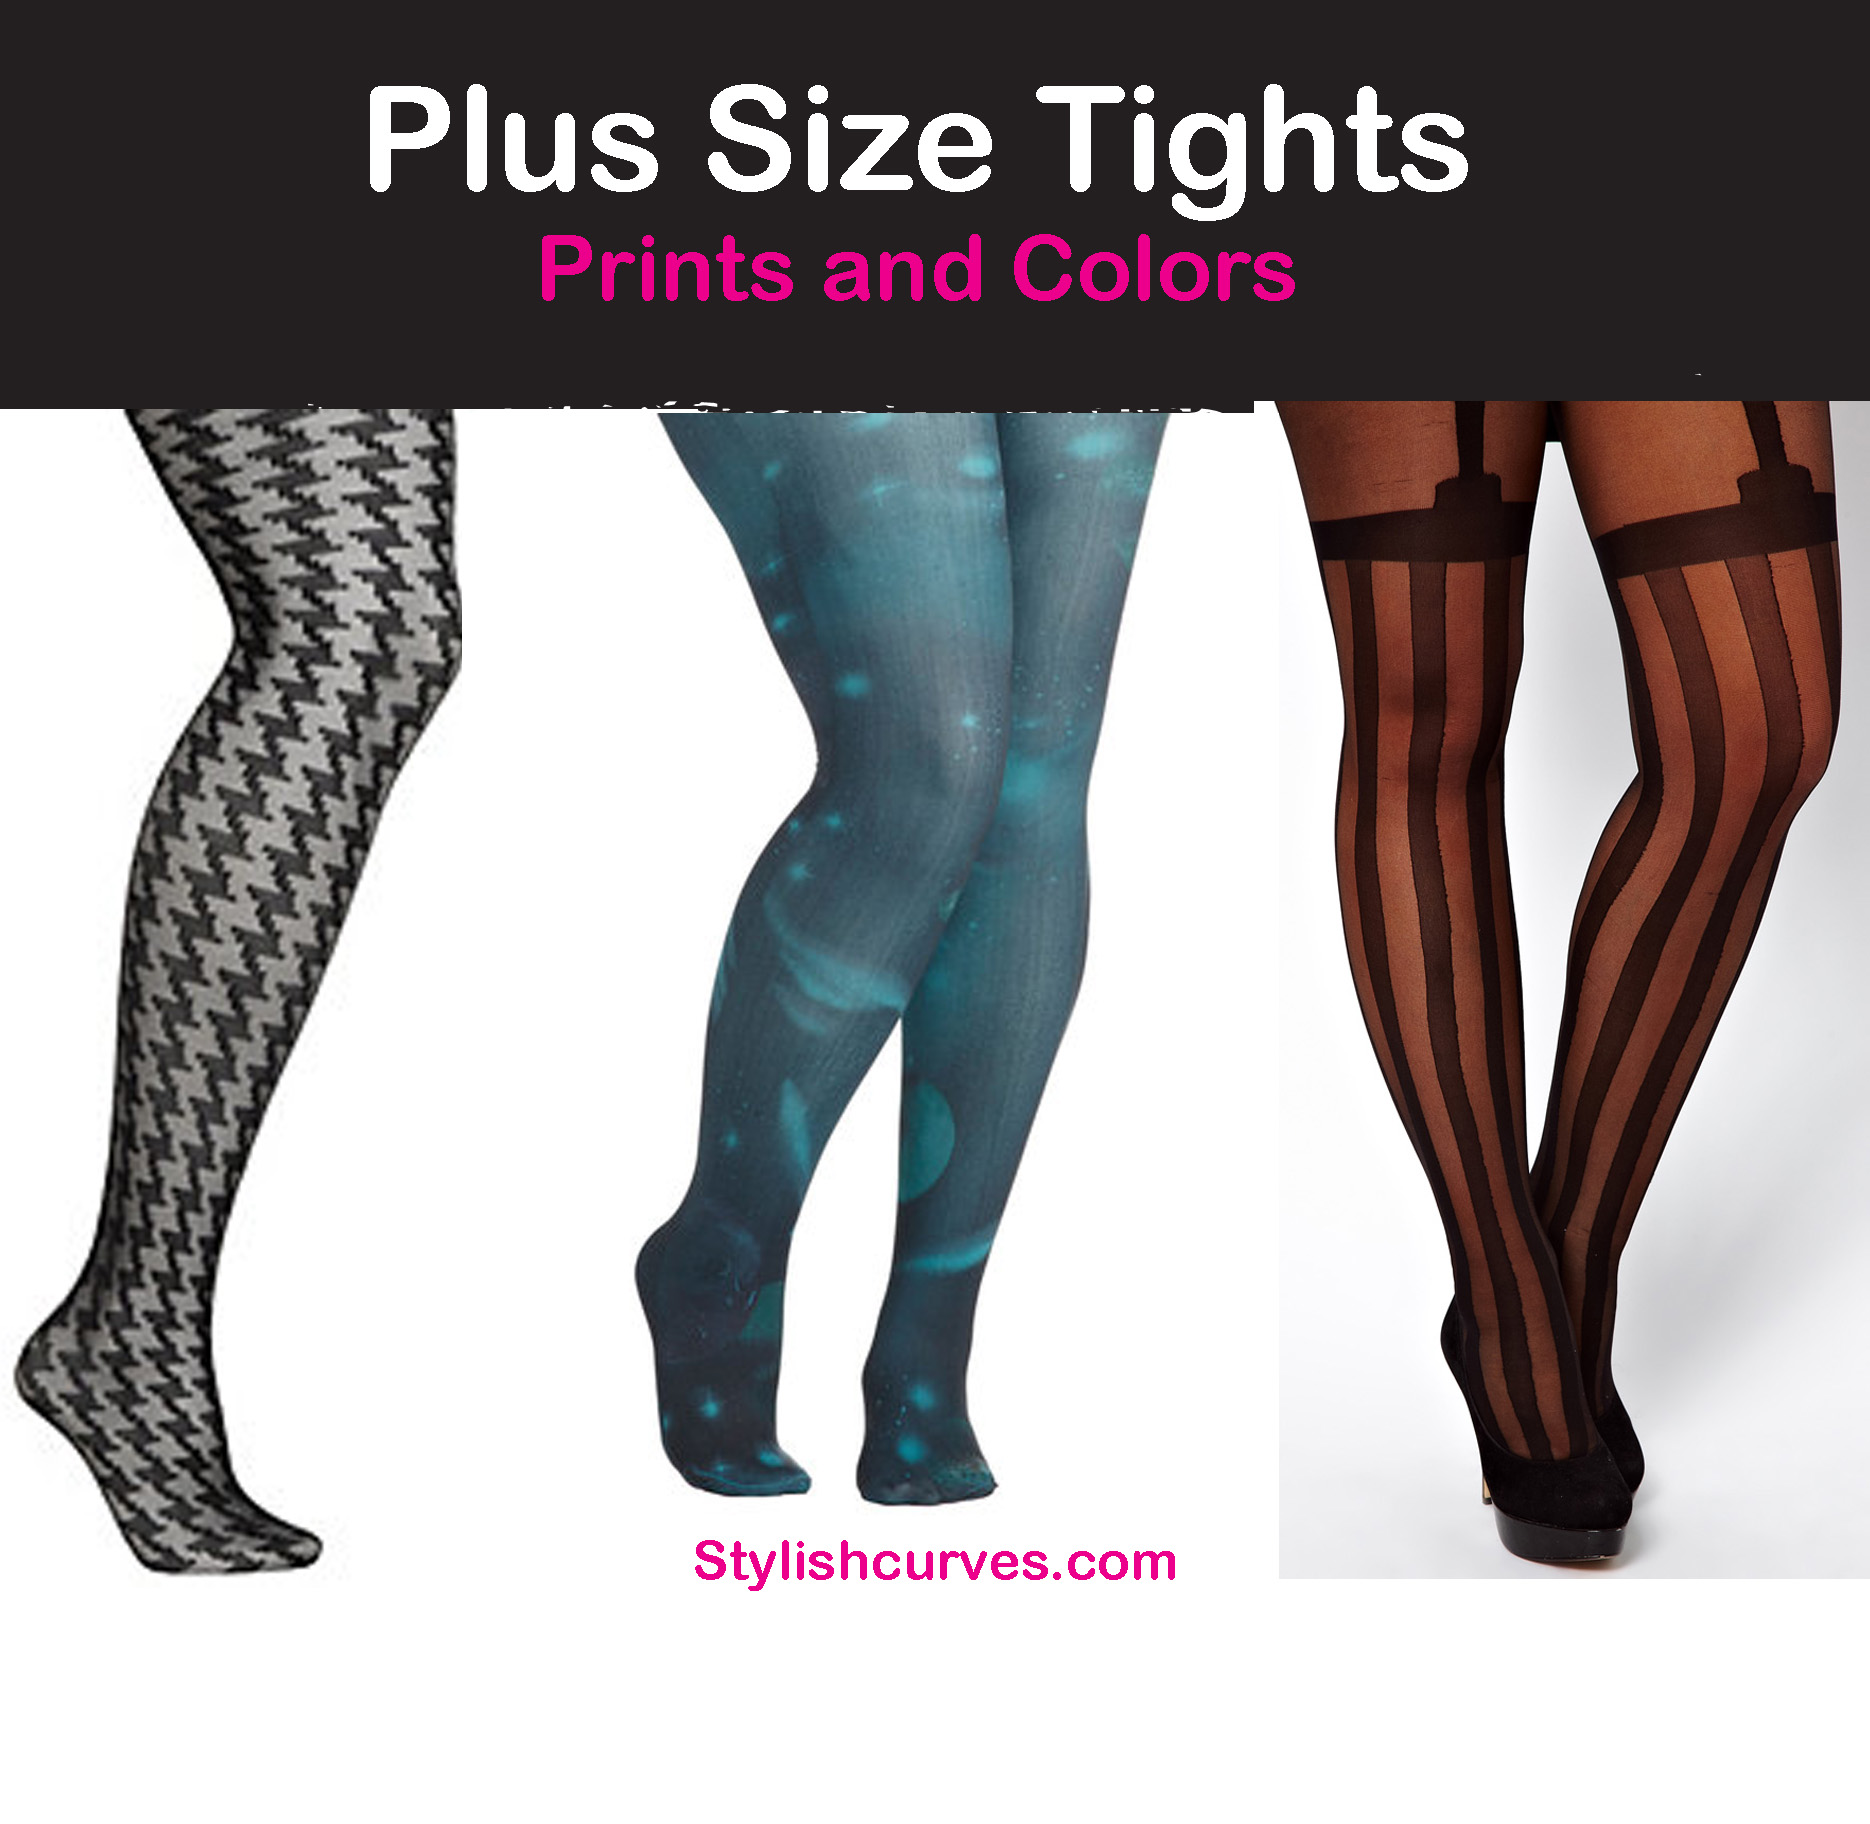 SHOPPING: PLUS SIZE TIGHTS, PRINTS, AND COLORS